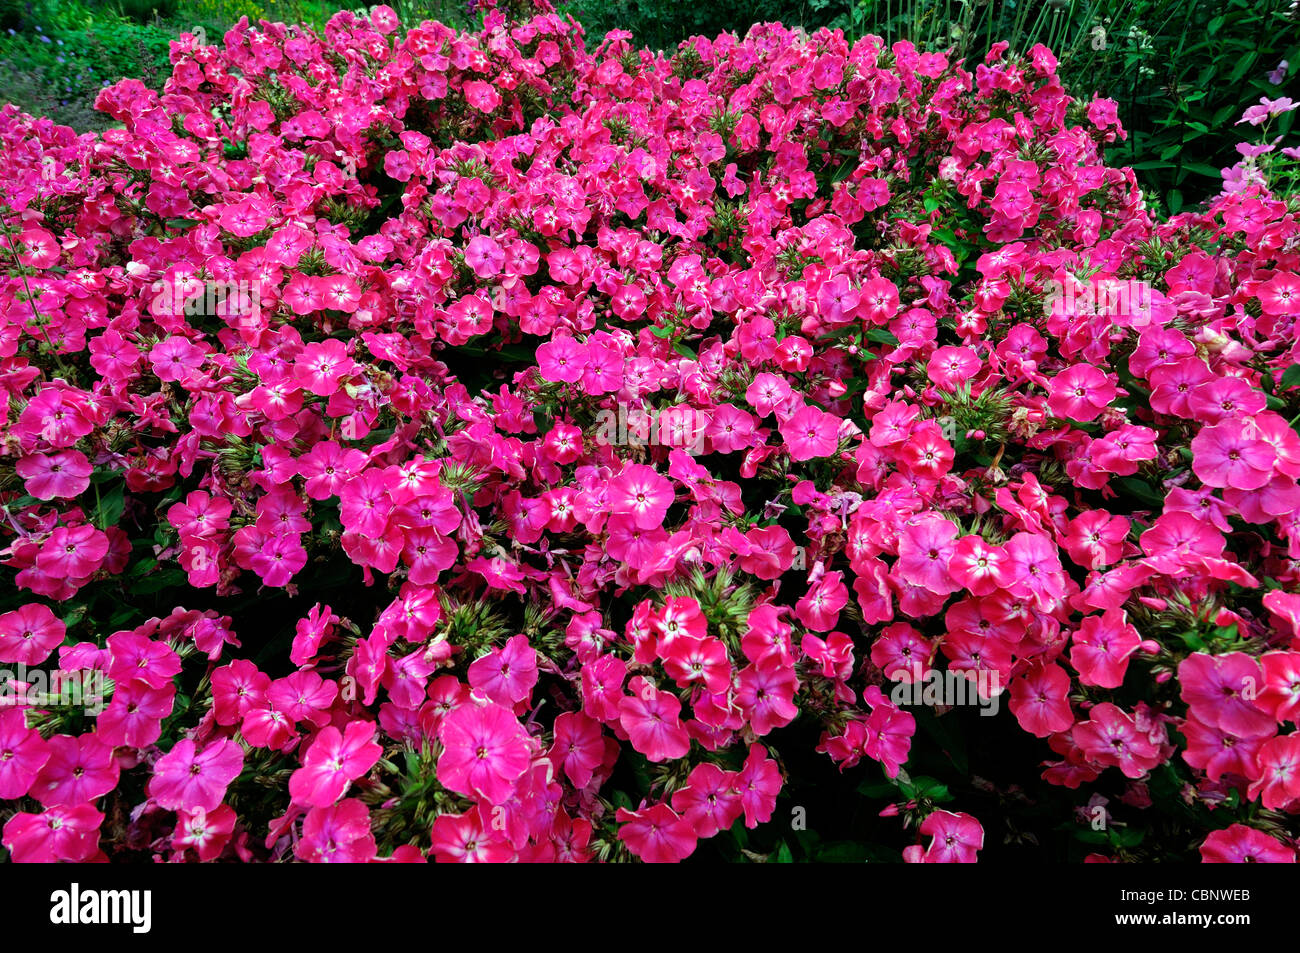 pink phlox paniculata perennial herbaceous plant flowers. Black Bedroom Furniture Sets. Home Design Ideas